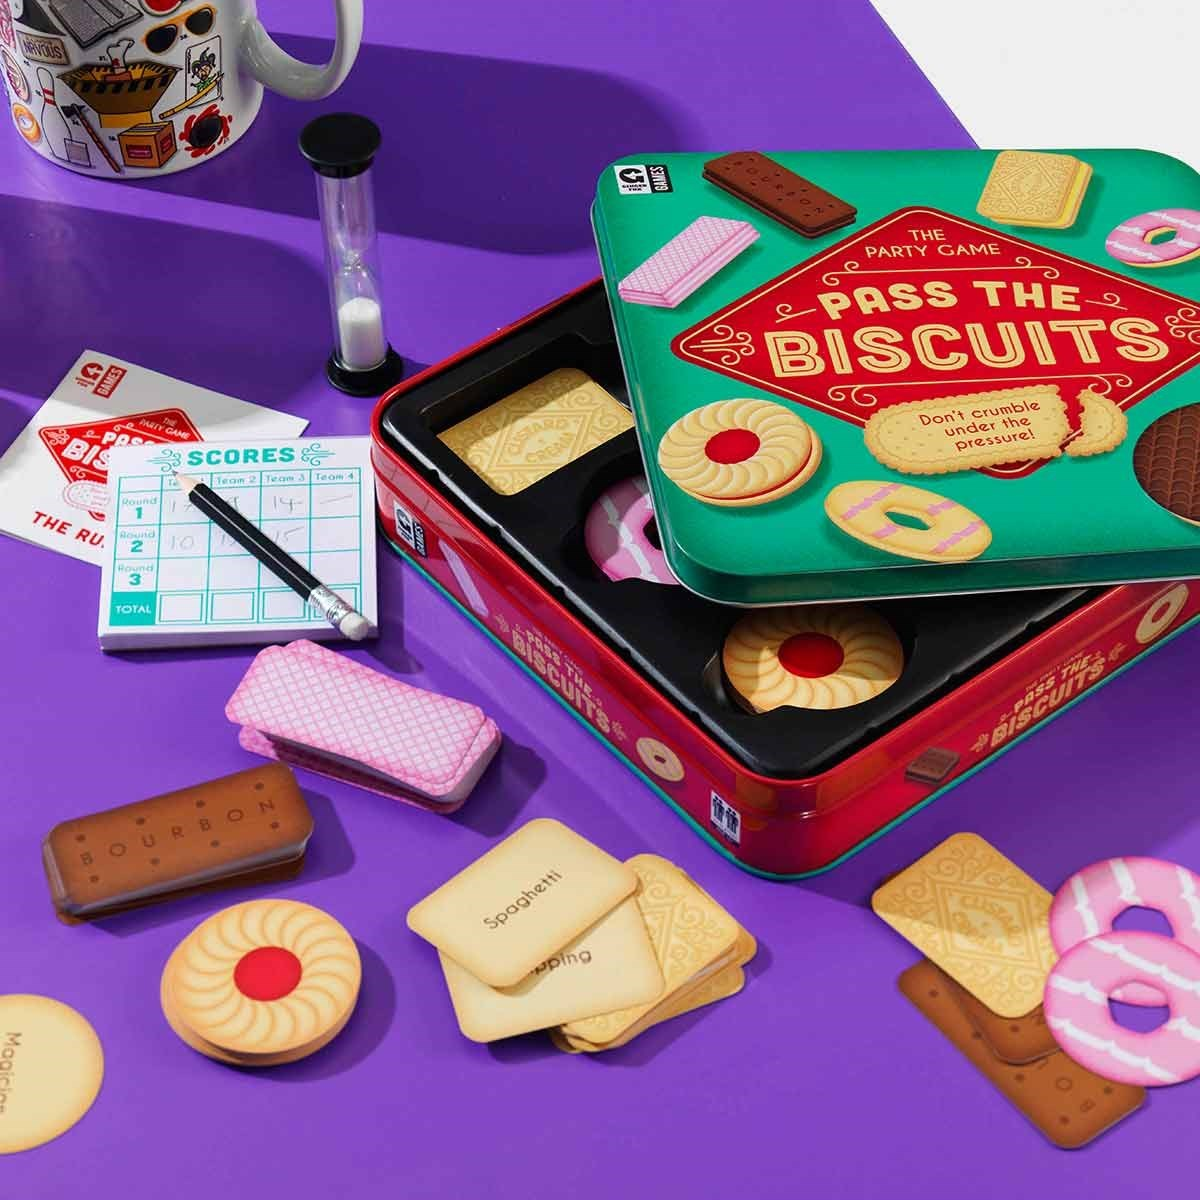 Easter gifts 41 easter present ideas the present finder pass the biscuits game negle Choice Image